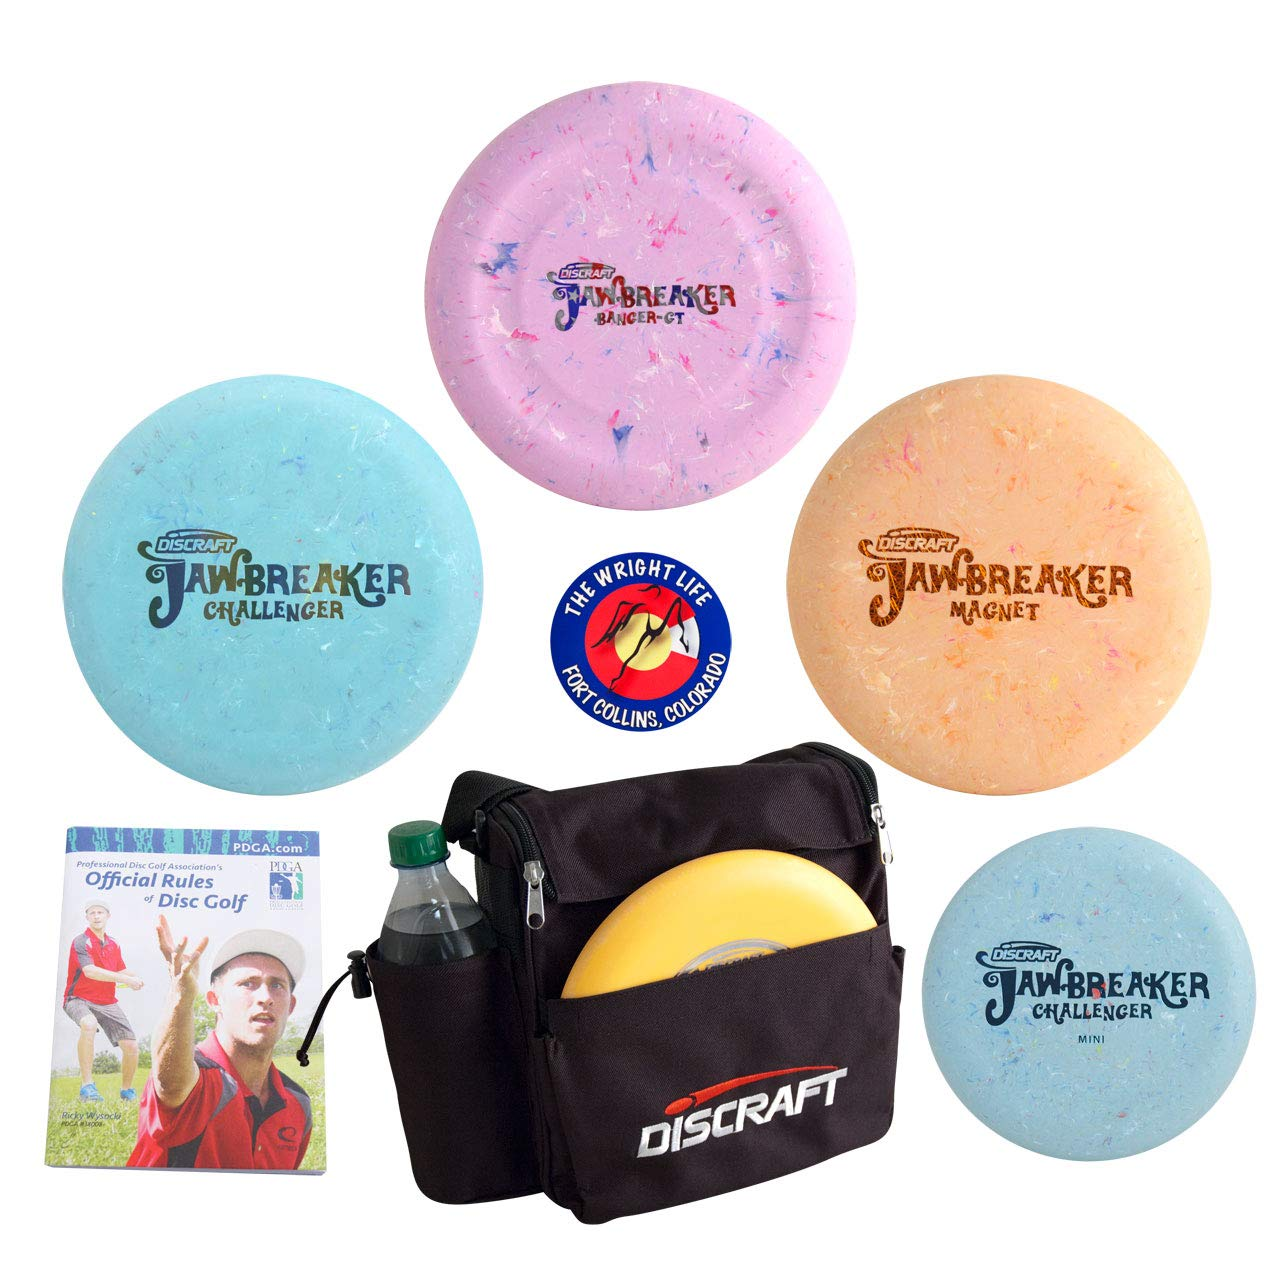 Discraft Jawbreaker Putter Disc Golf Gift Set - 3 Discs + Weekender Bag, Sticker, Rules Book (7 Items, Colors May Vary) by Discraft